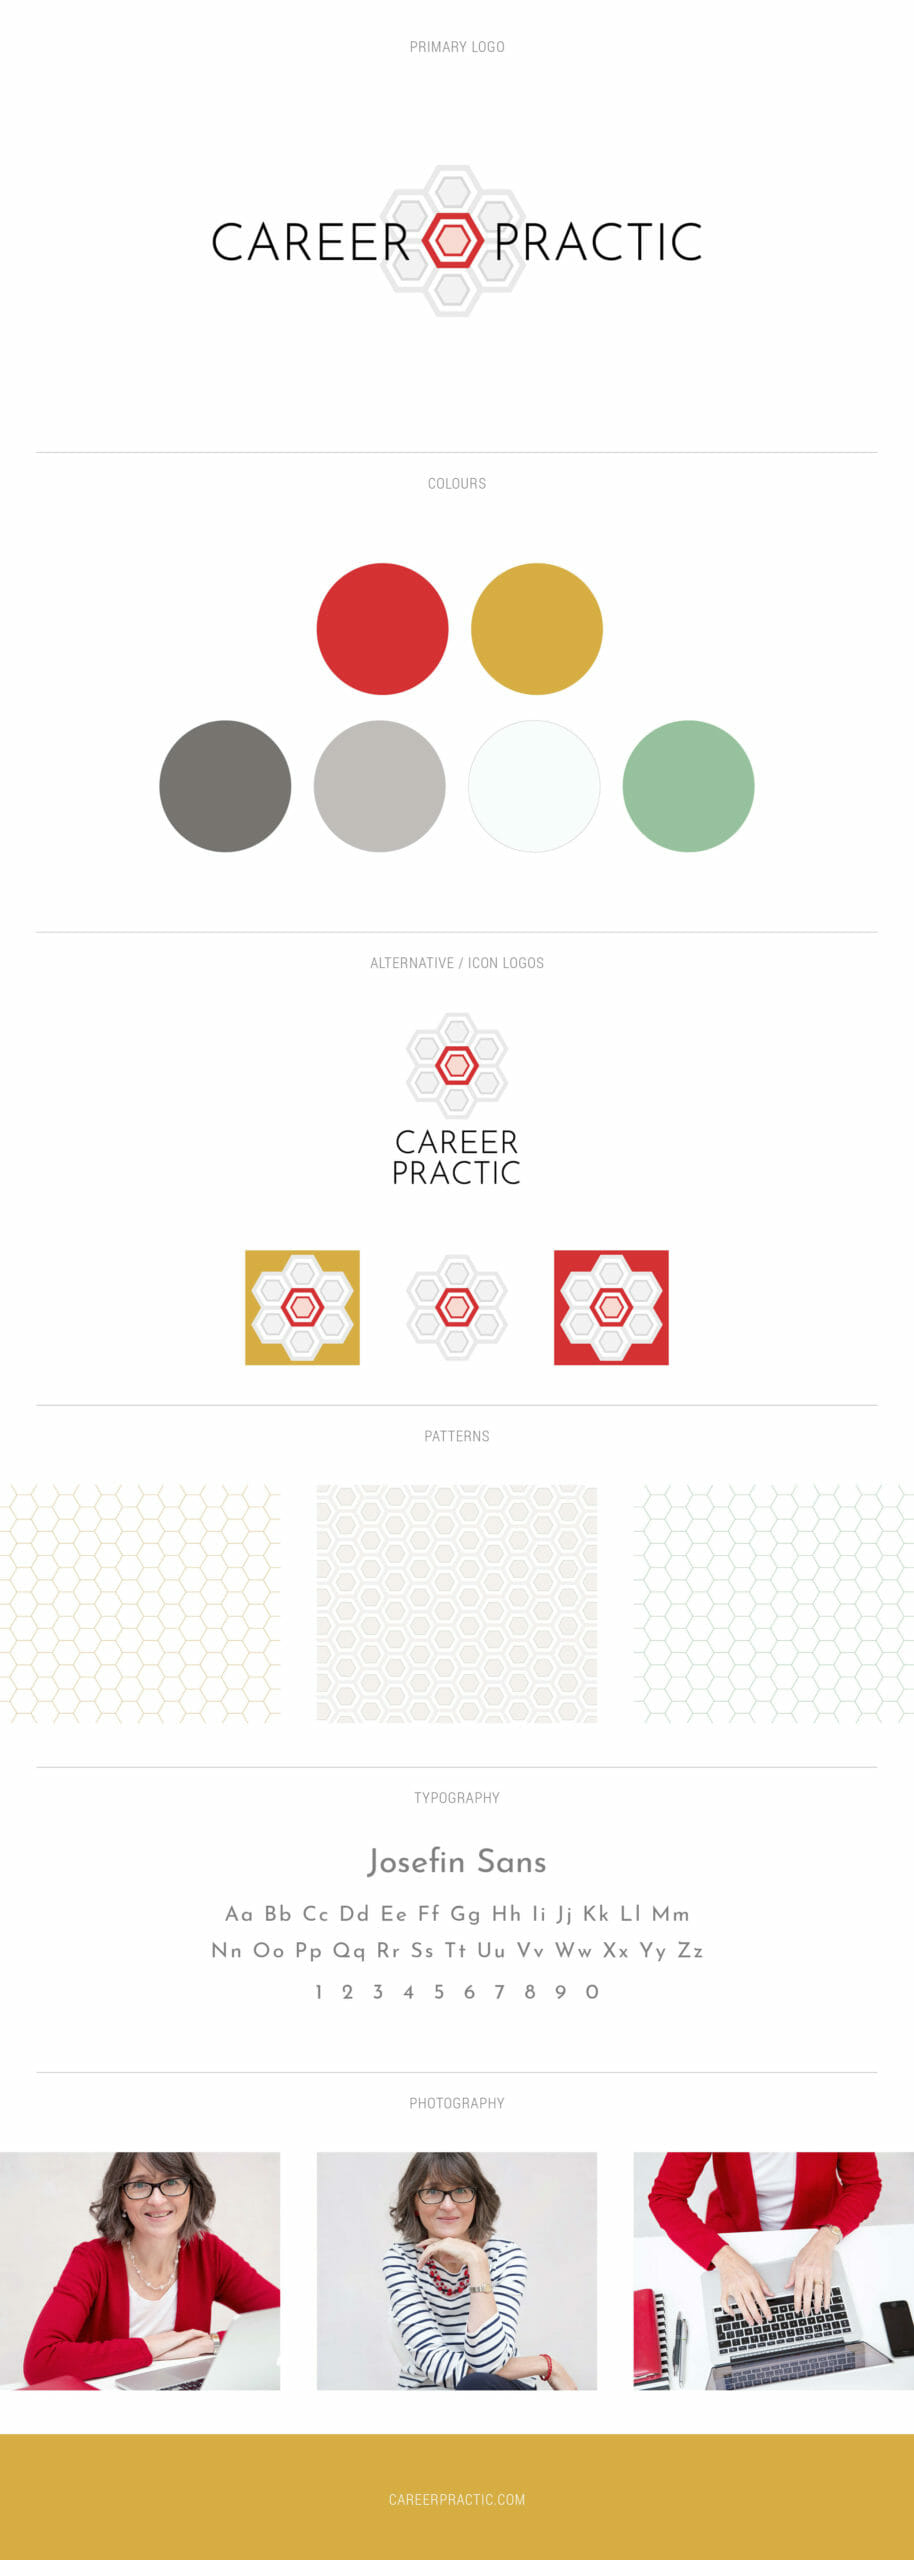 Career Practic brand identity by B Double E